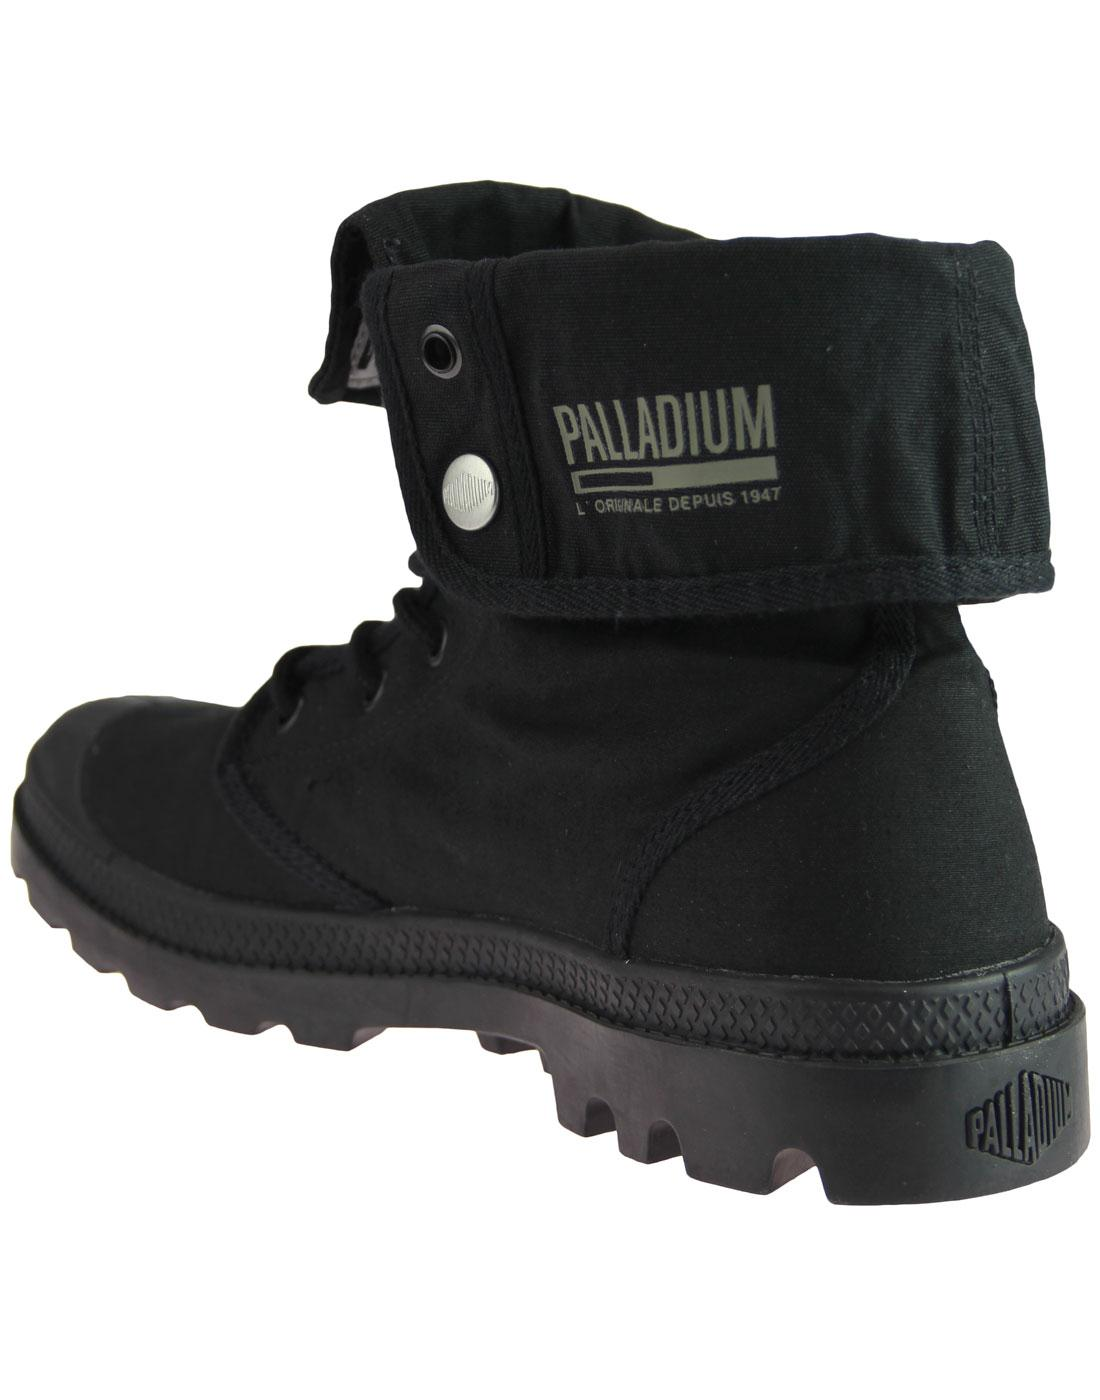 856a5205afc PALLADIUM Baggy Army Training Camp Retro Boots in Black